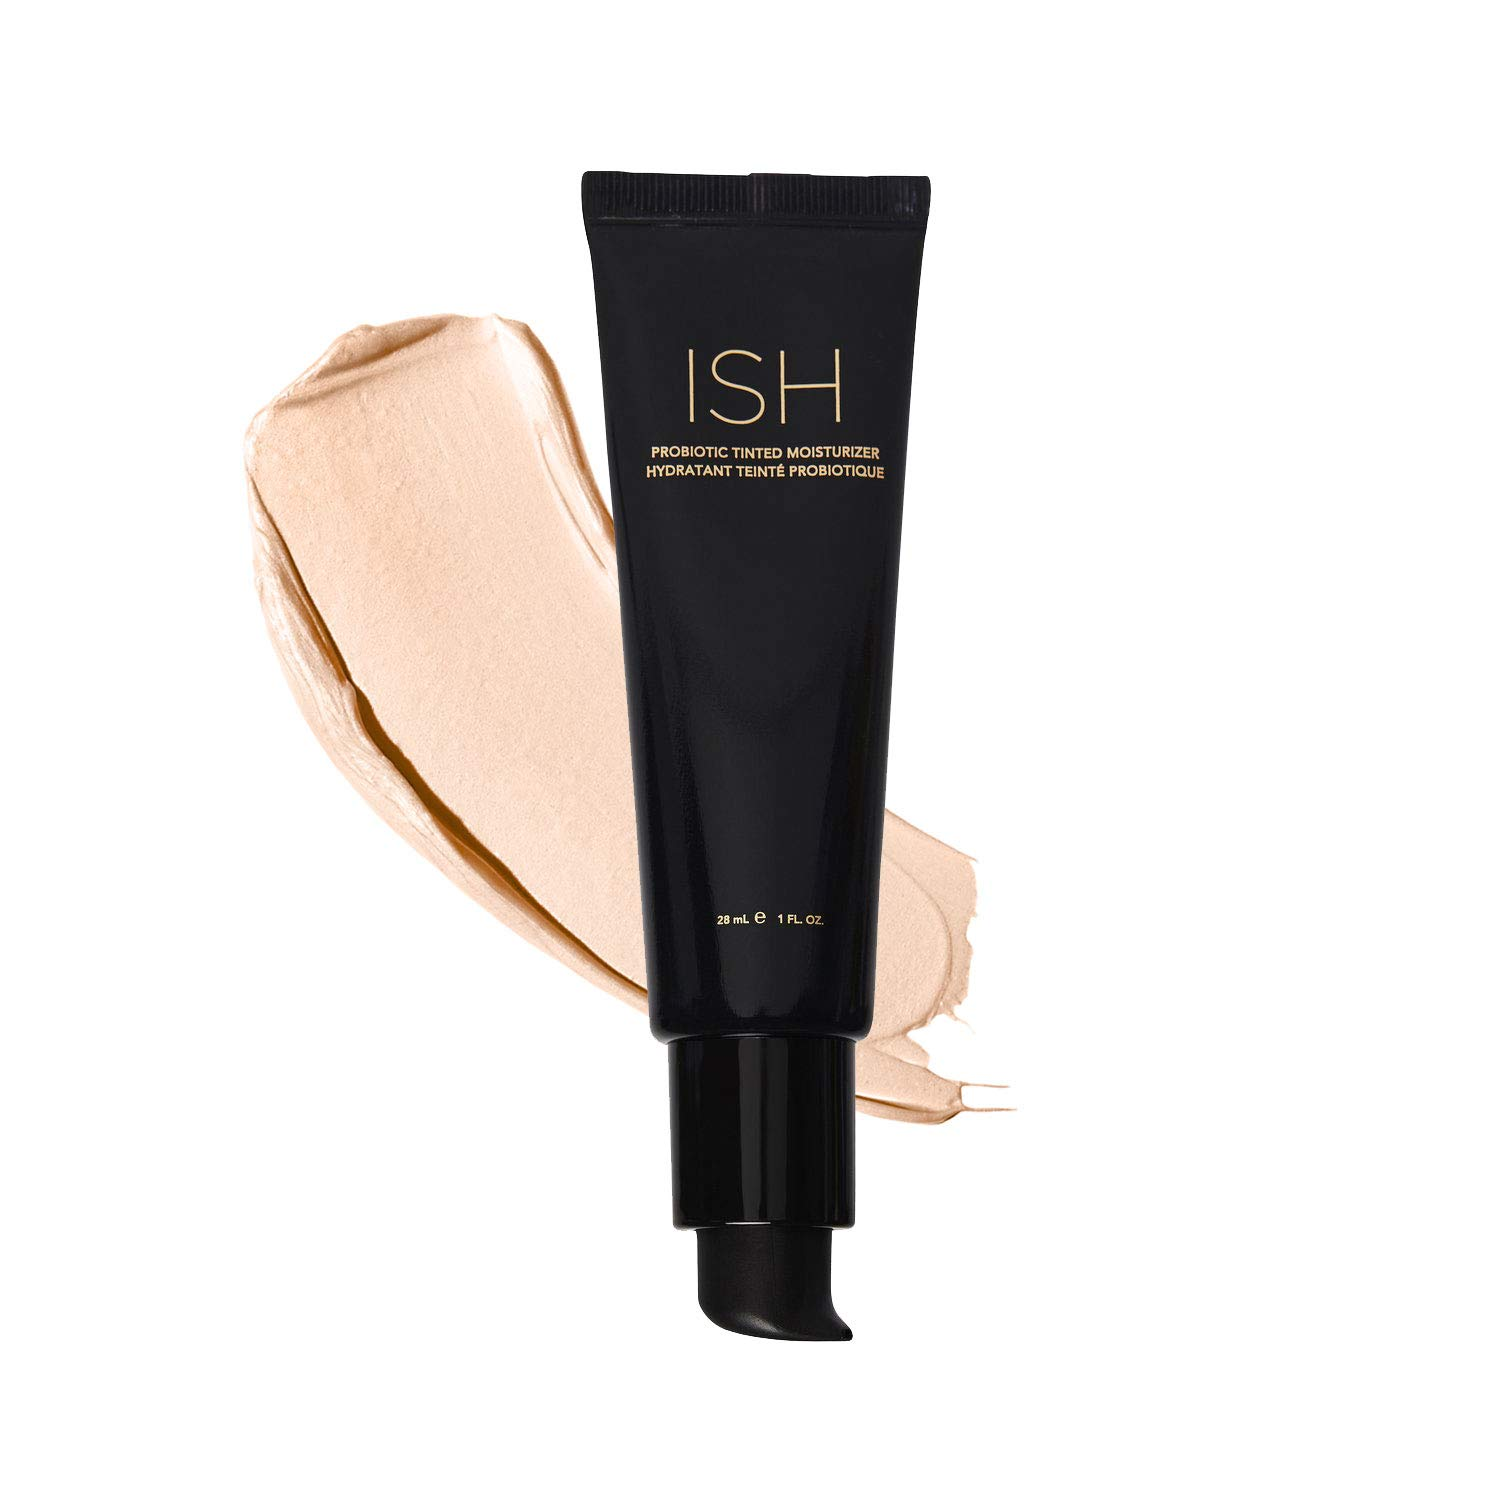 ISH Probiotic Tinted Moisturizer Skin Care (4 Shades) Cruelty Free, Paraben and Sulfate Free (Fair) by FabFitFun